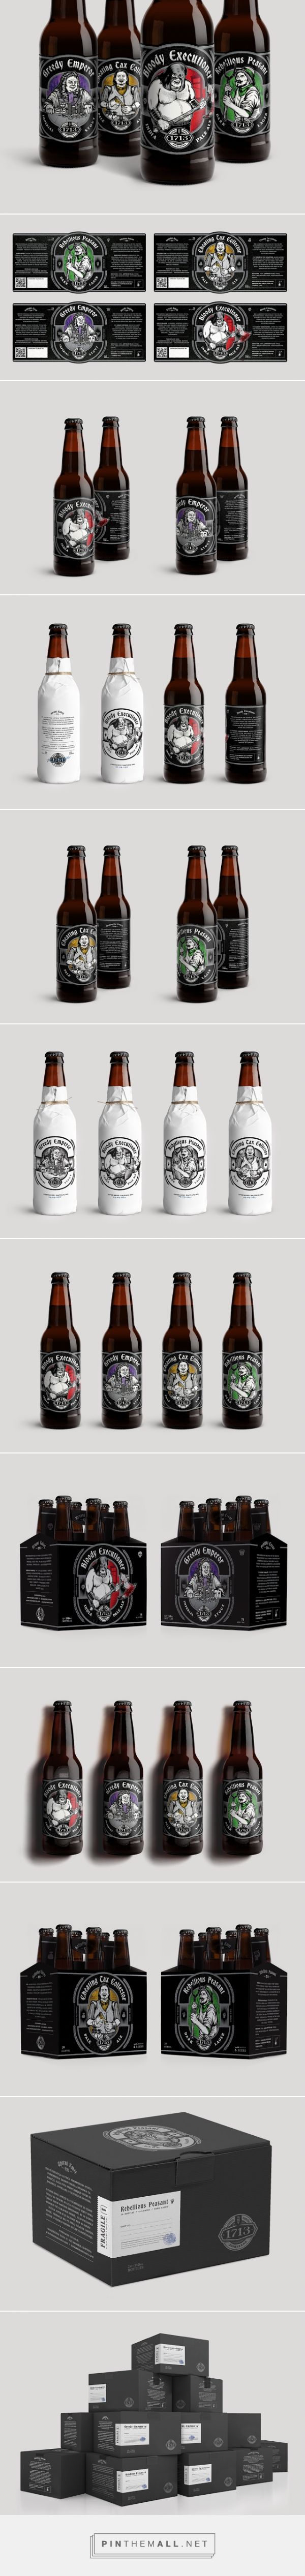 1713 Brewing Co. #beer #packaging designed by Milovanović​ - http://www.packagingoftheworld.com/2015/06/1713-brewing-co.html